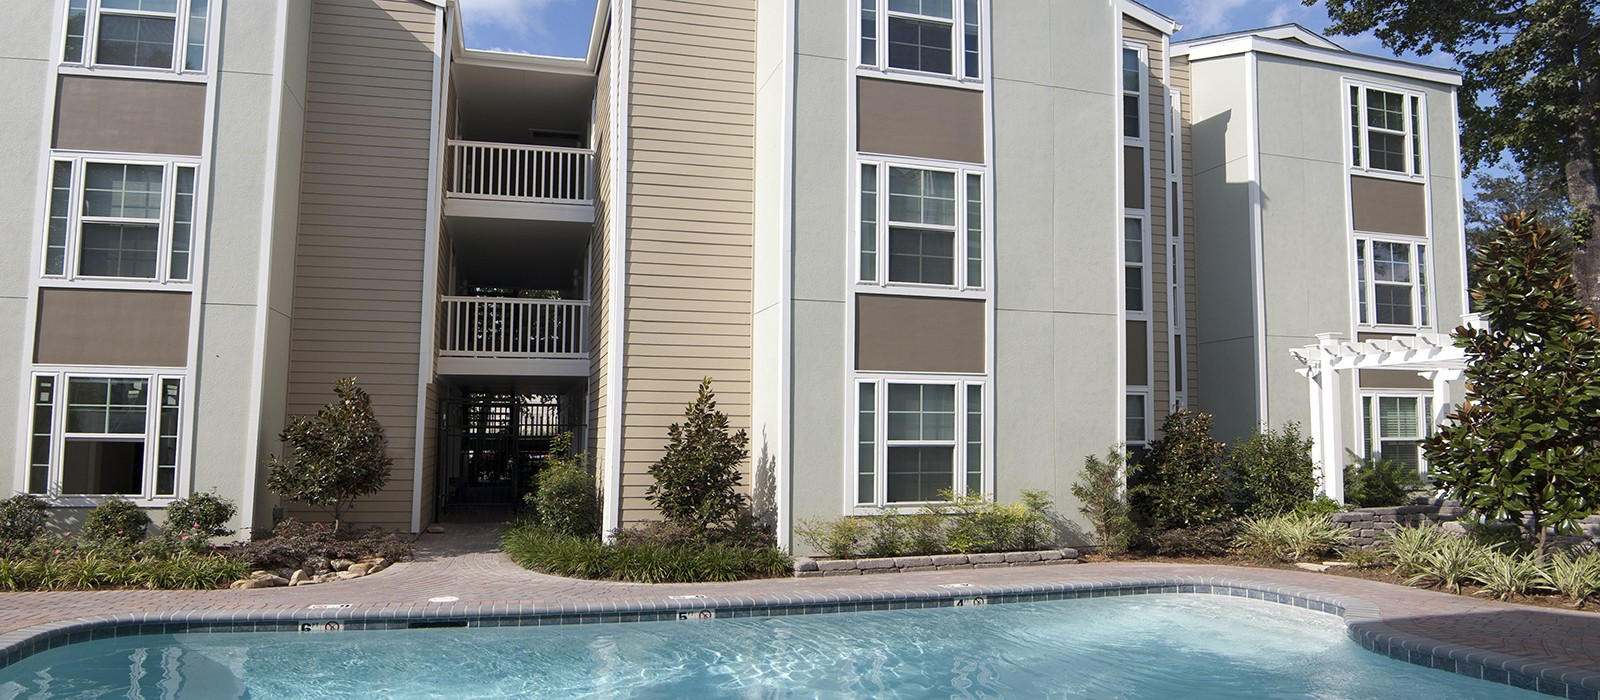 Willowood Apartments In Metairie La Studio 1 2 3 Bedroom Apartments For Rent 1st Lake